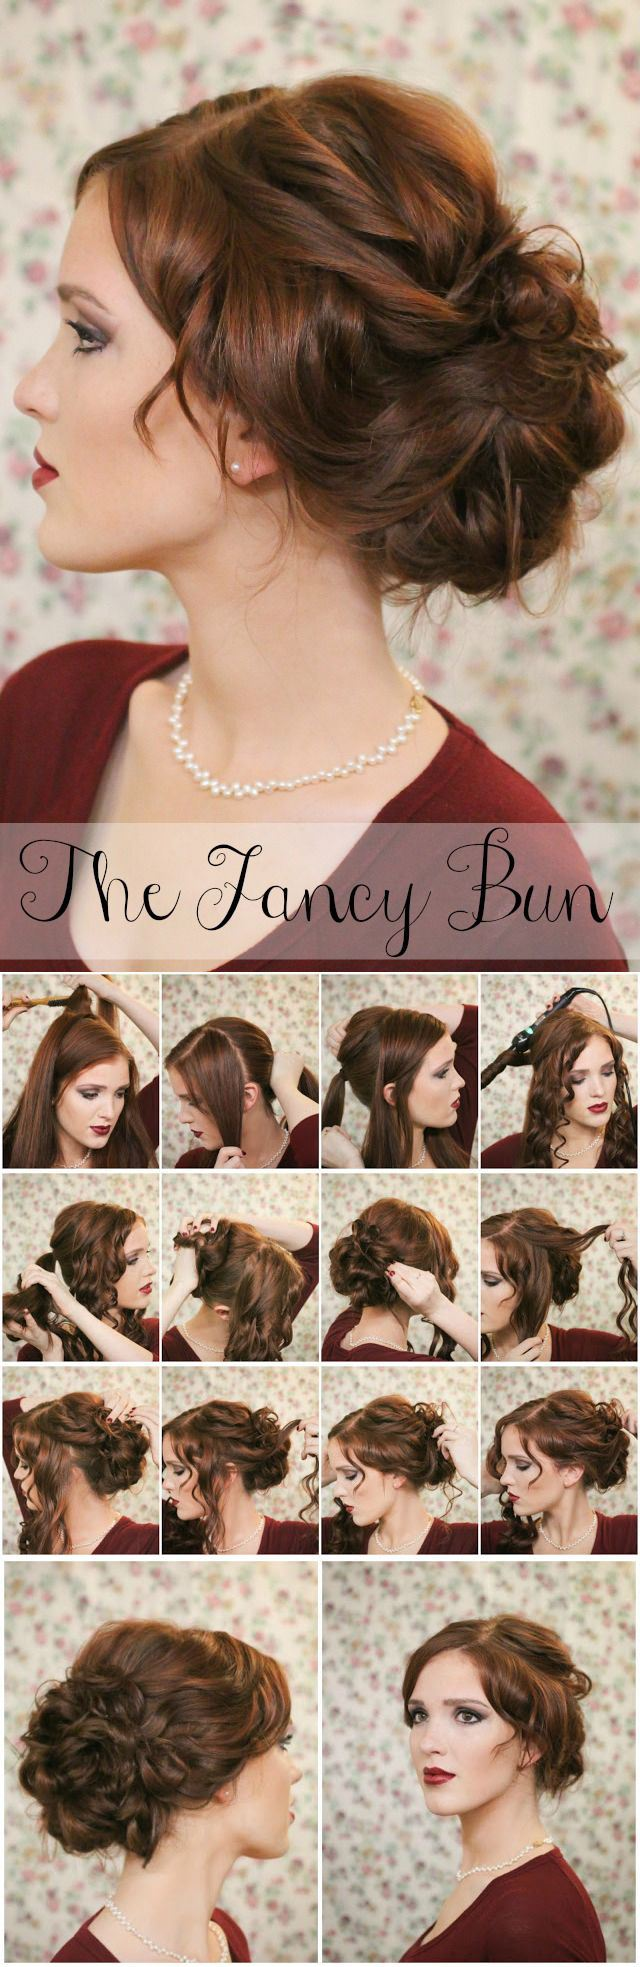 Tremendous Top 25 Messy Hair Bun Tutorials Perfect For Those Lazy Mornings Hairstyle Inspiration Daily Dogsangcom